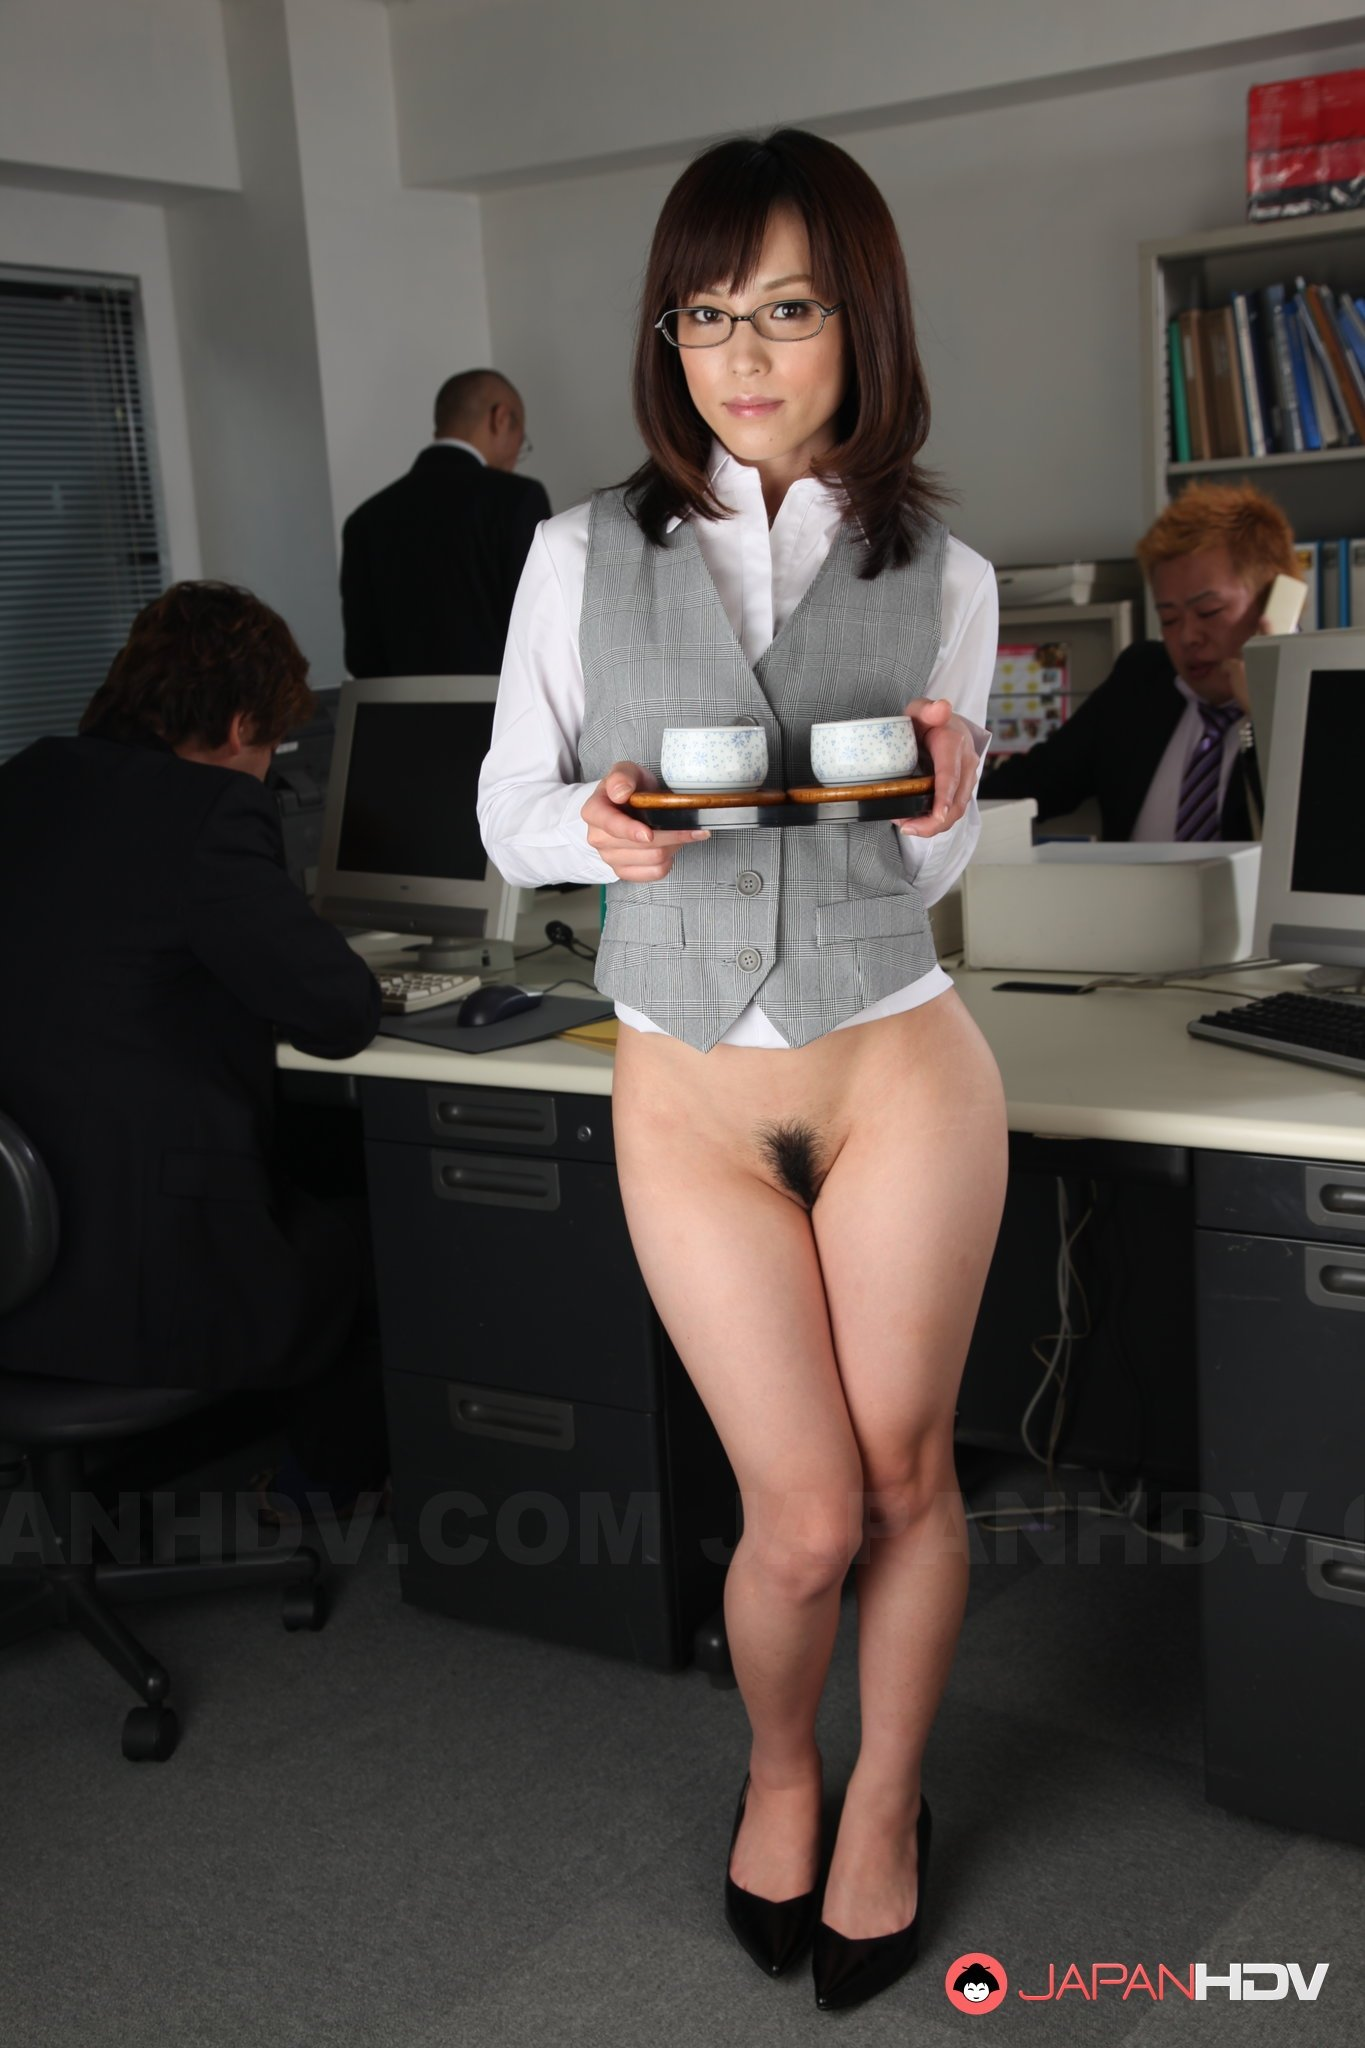 Real sex wife video Big boob play time 21 Old teacher tong sutdent home sex